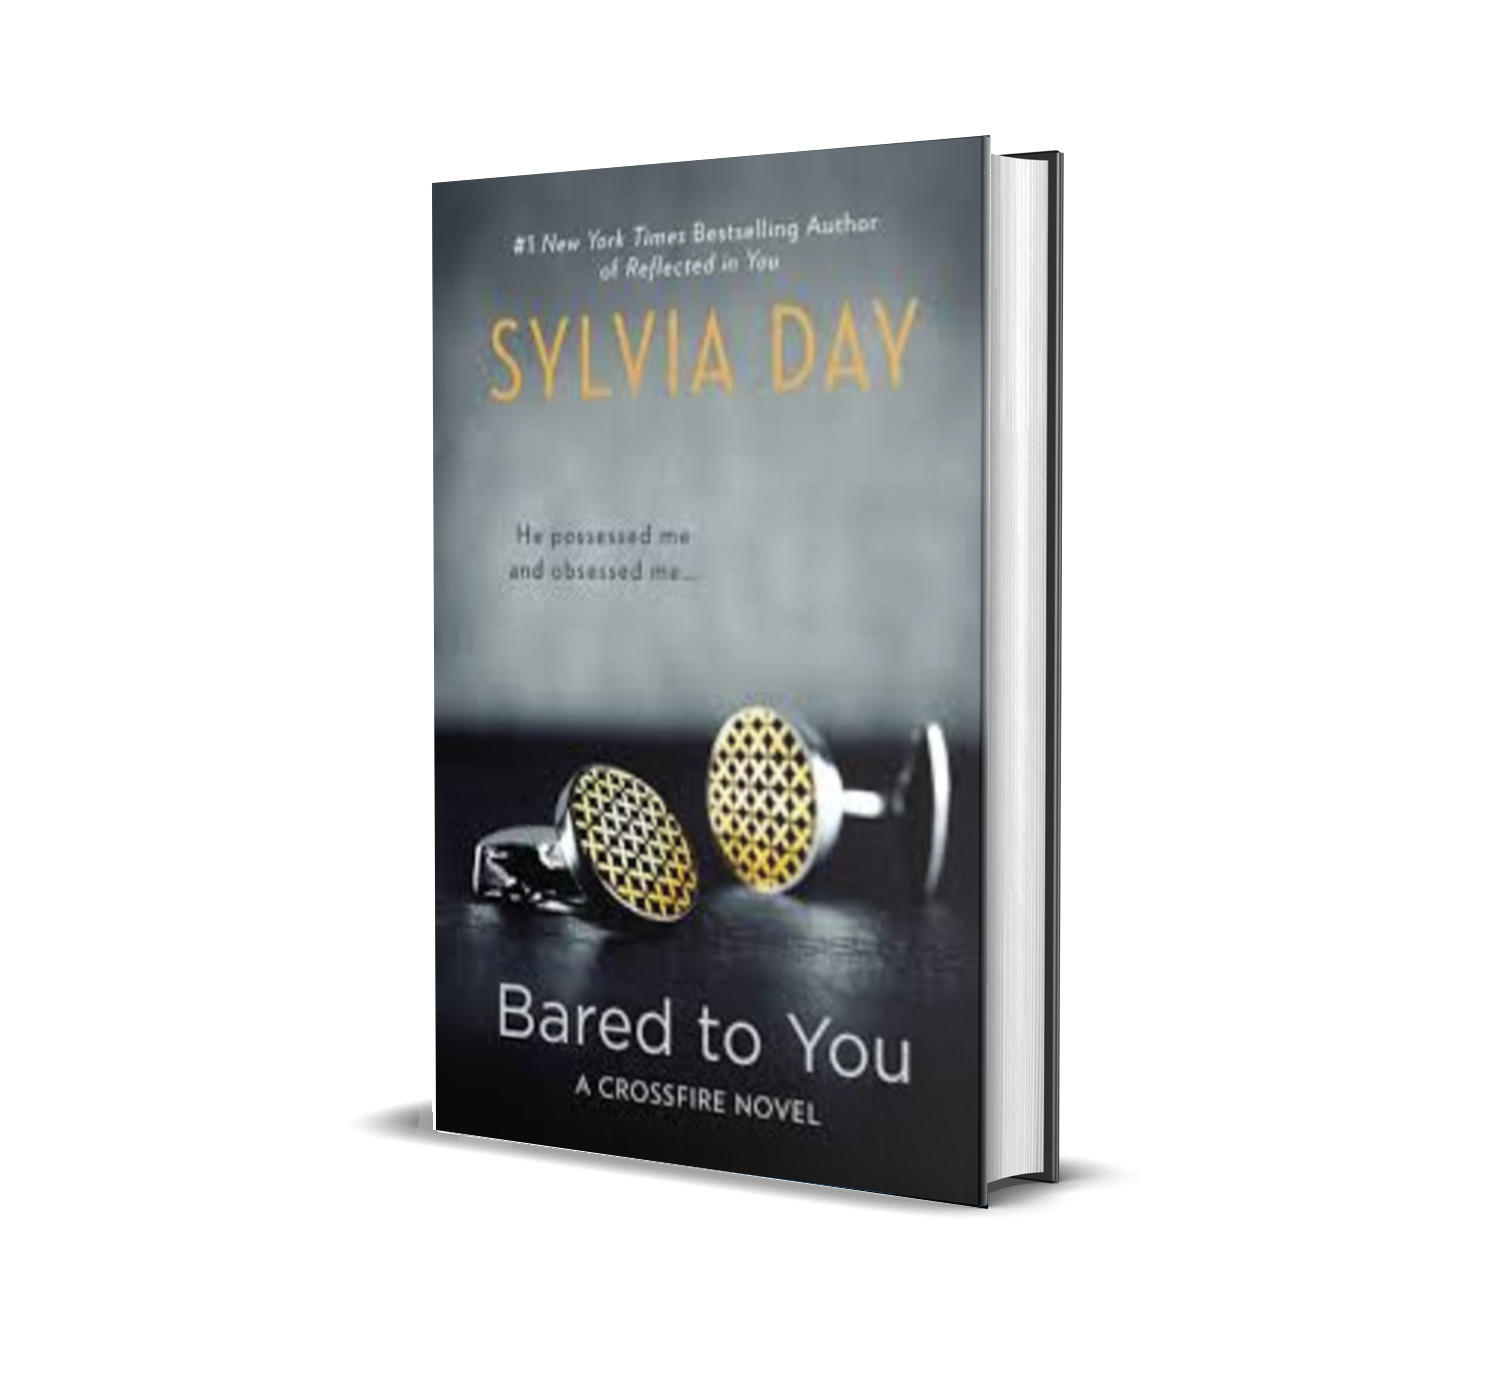 Bared to You: A Crossfire Novel - Sylvia Day